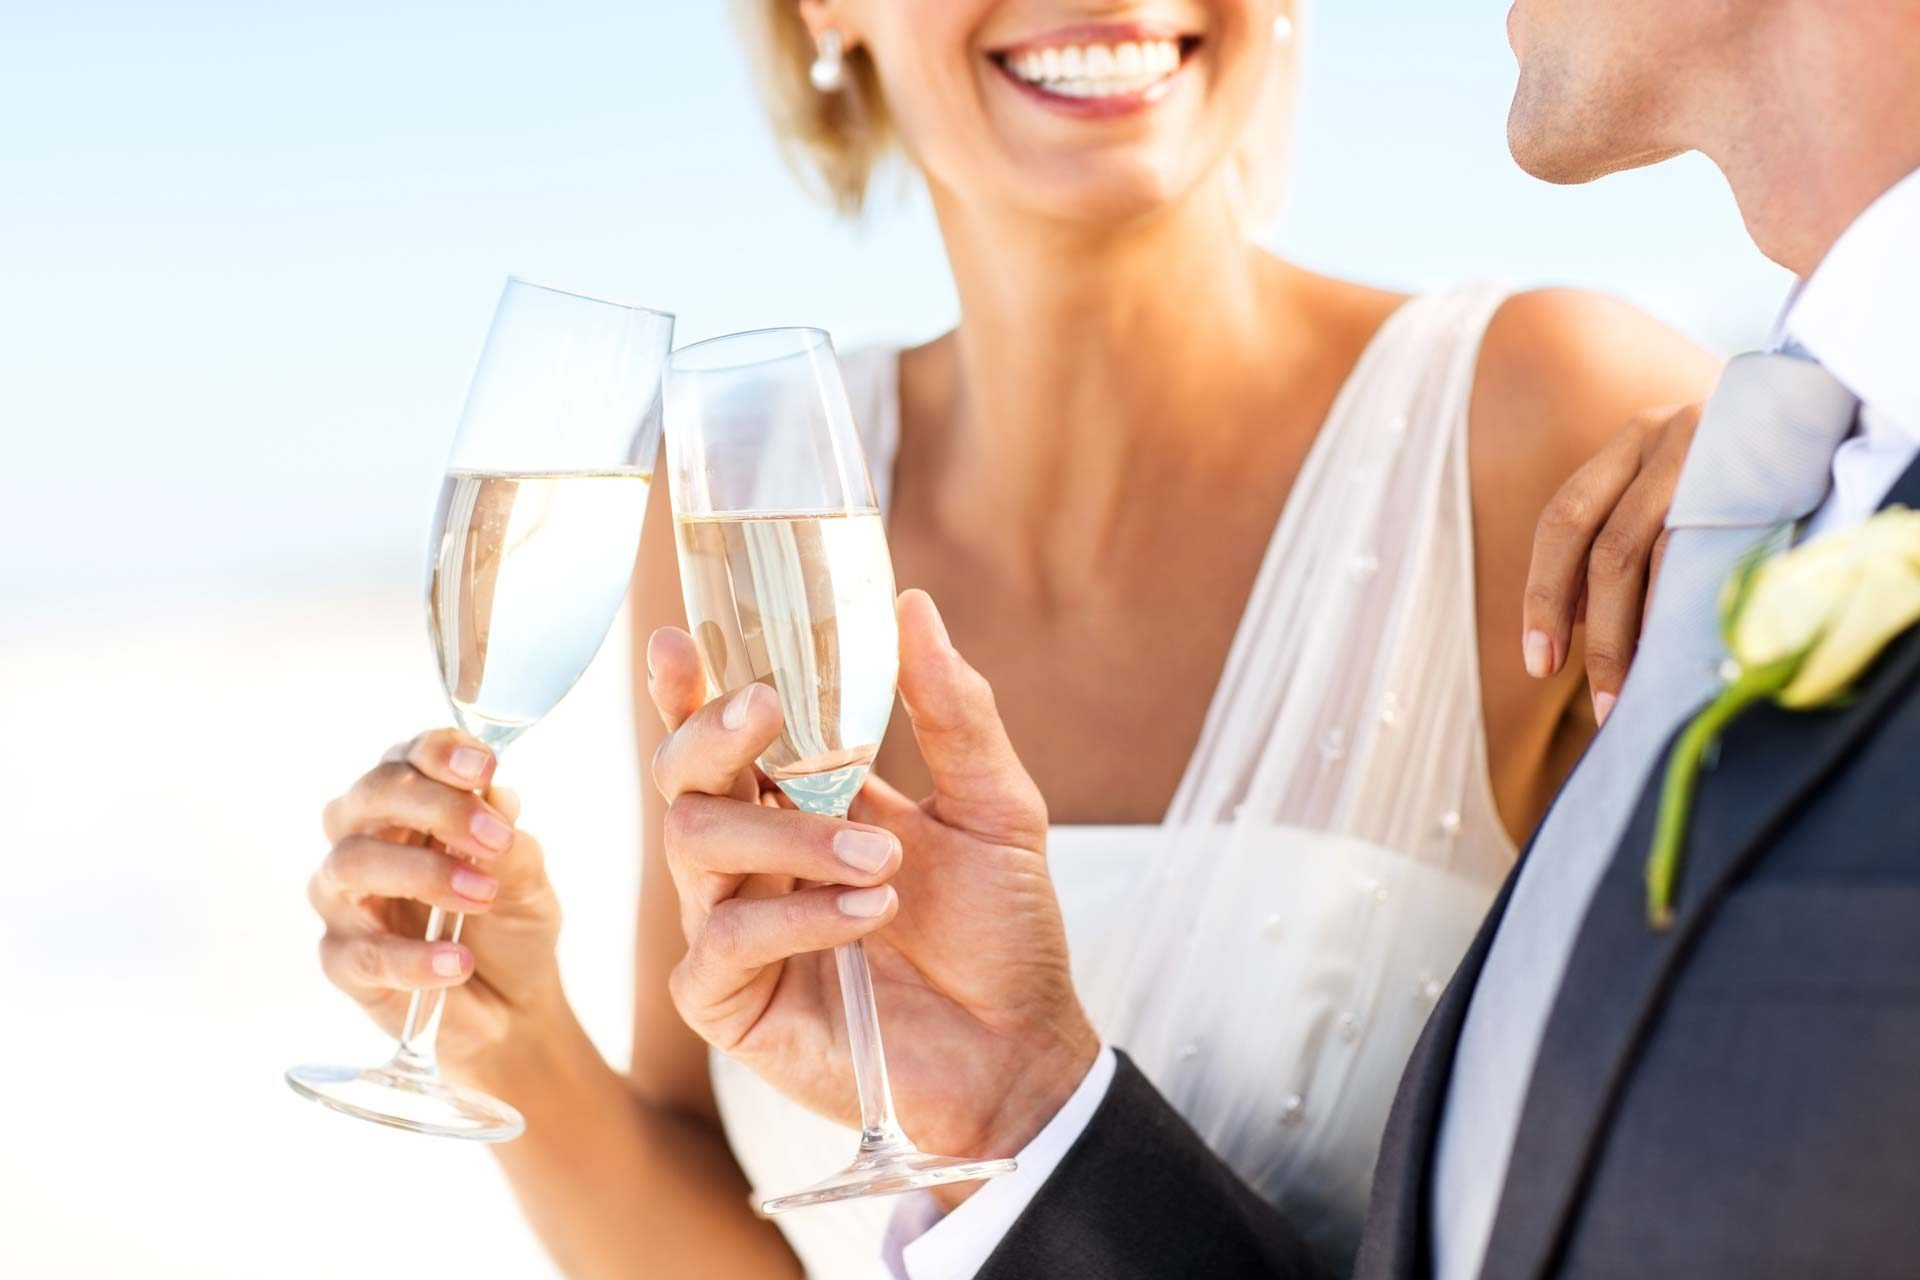 bride and groom drinking champagne together